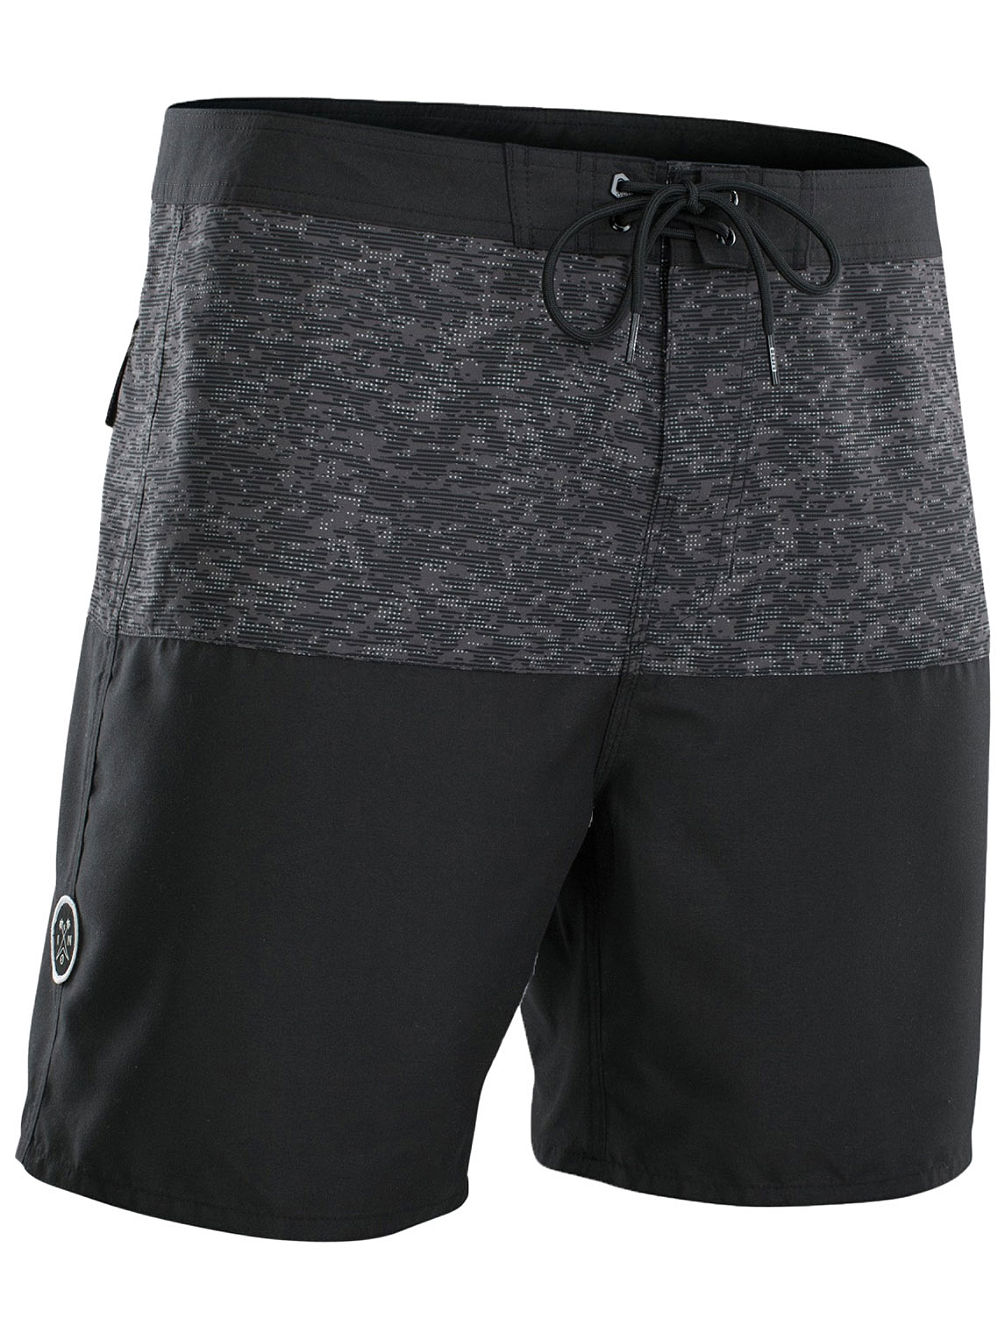 "Periscope 17"" Boardshorts"